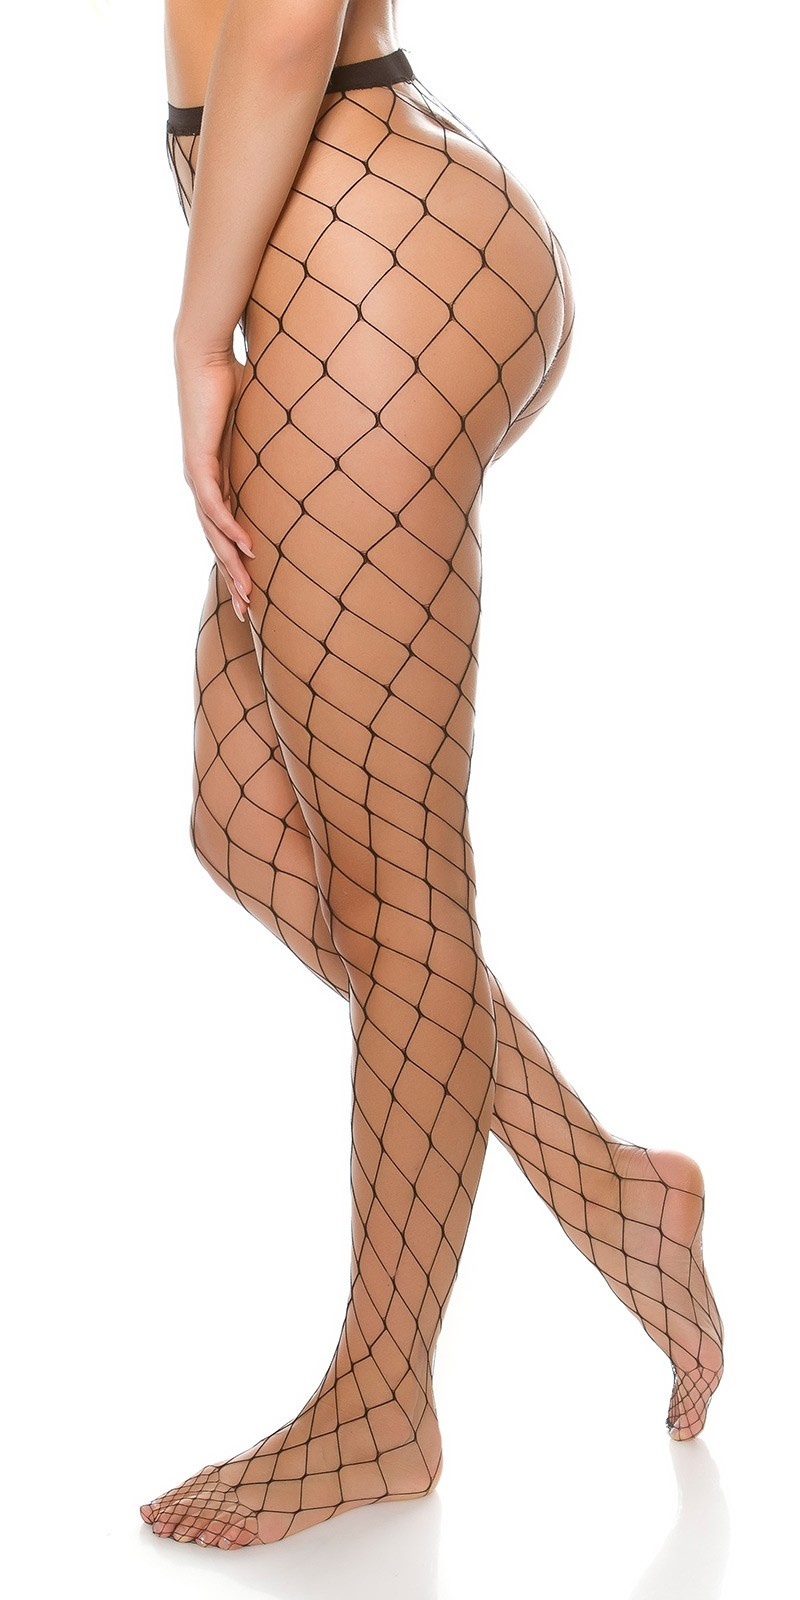 Sexy fishnet stockings Black